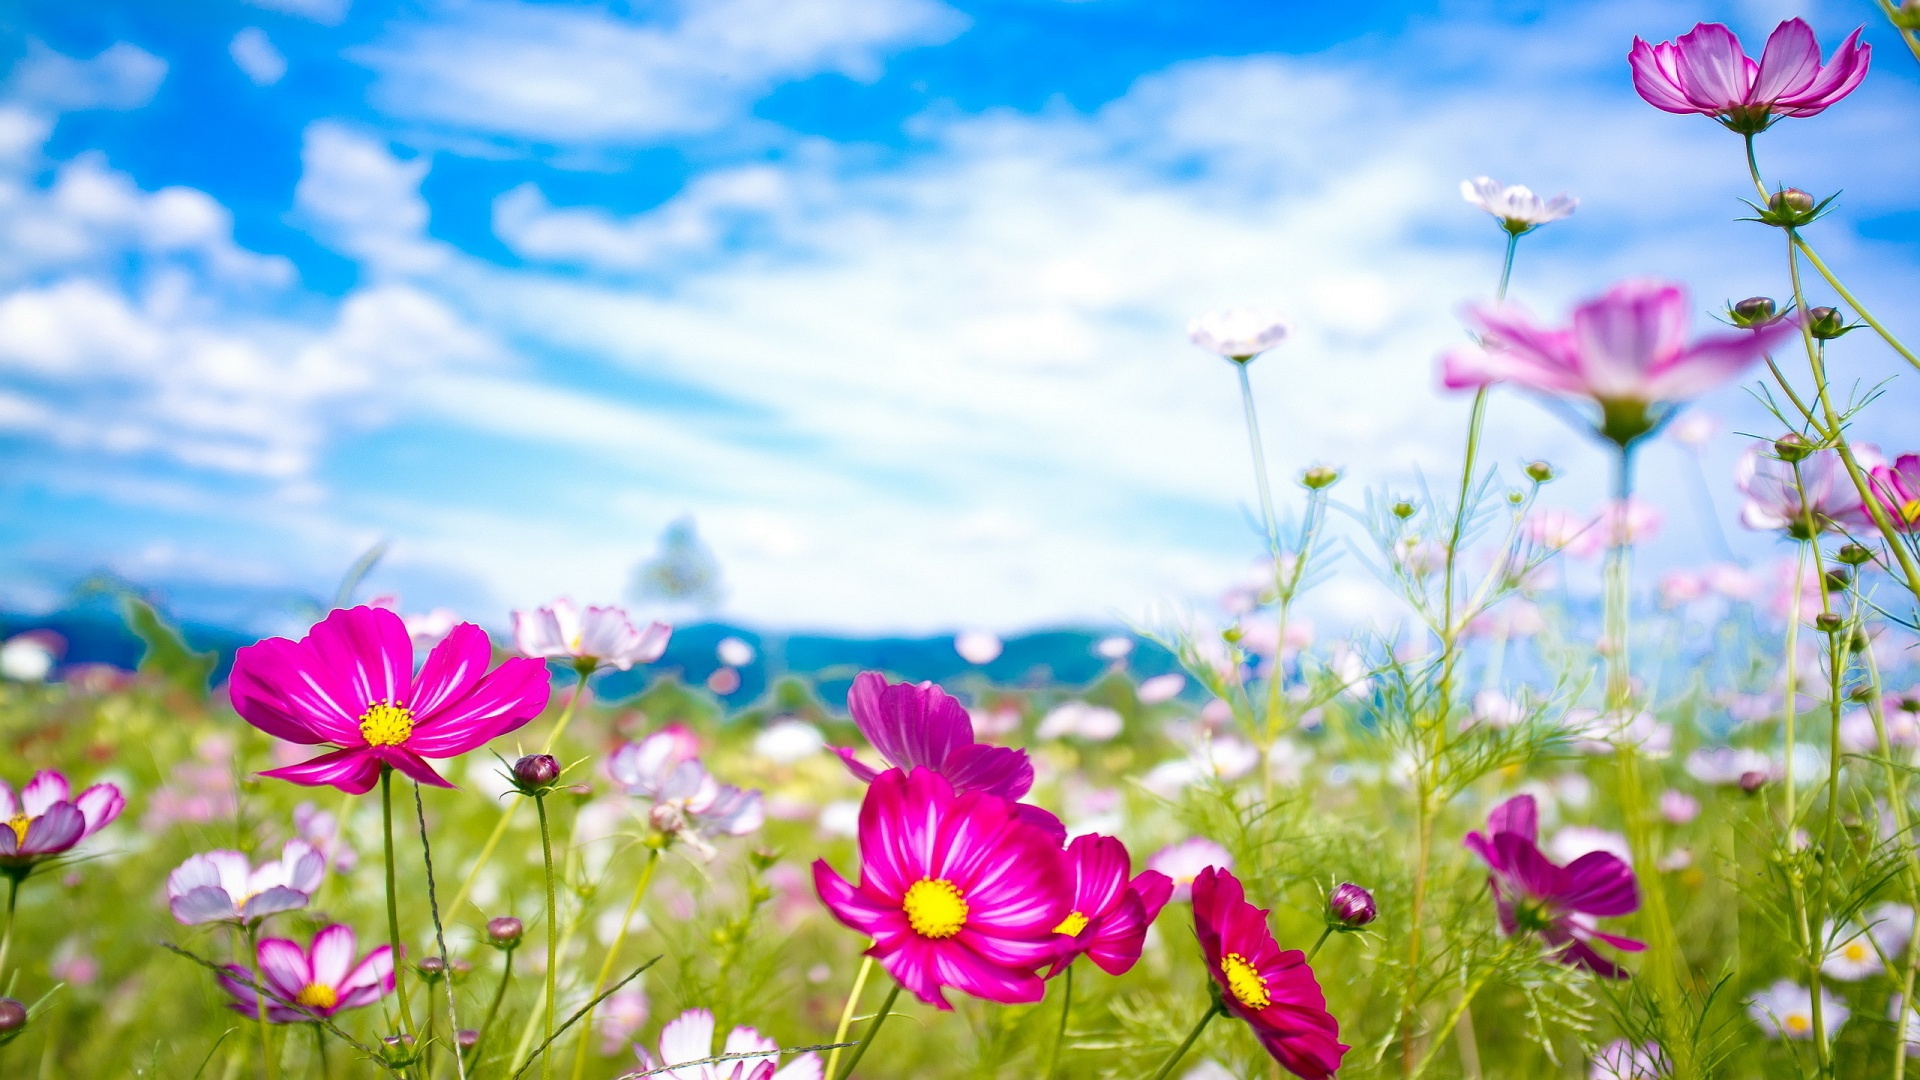 Summer Wallpaper   Wallpaper High Definition High Quality 1920x1080